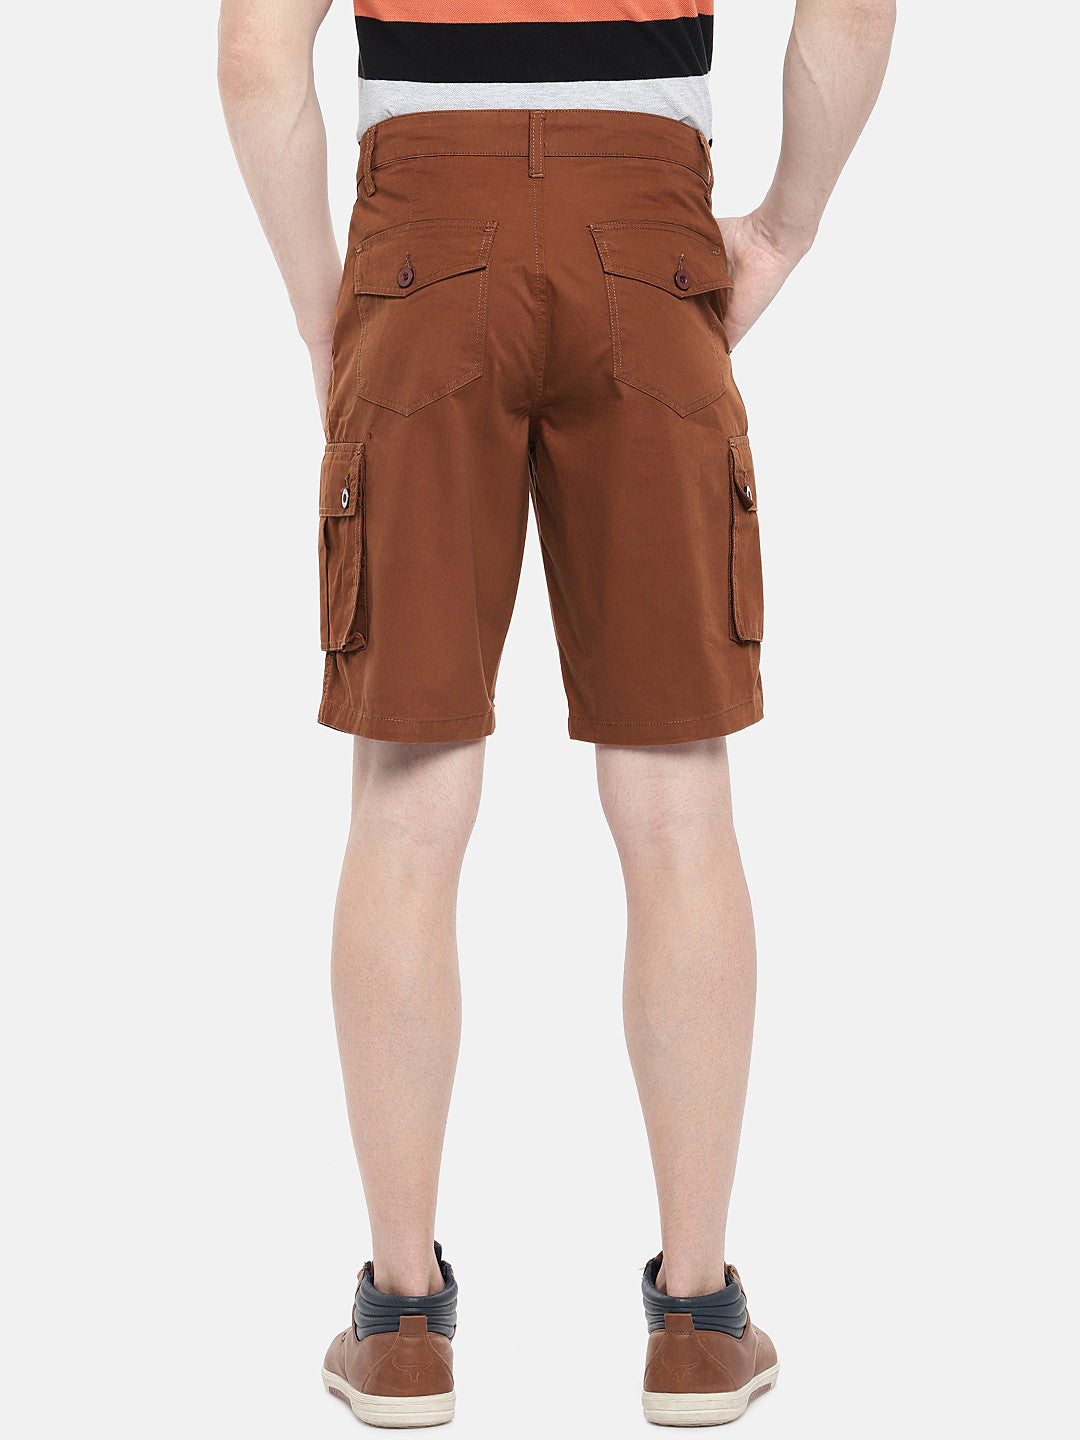 Orange Solid Regular Fit Cargo Shorts-3